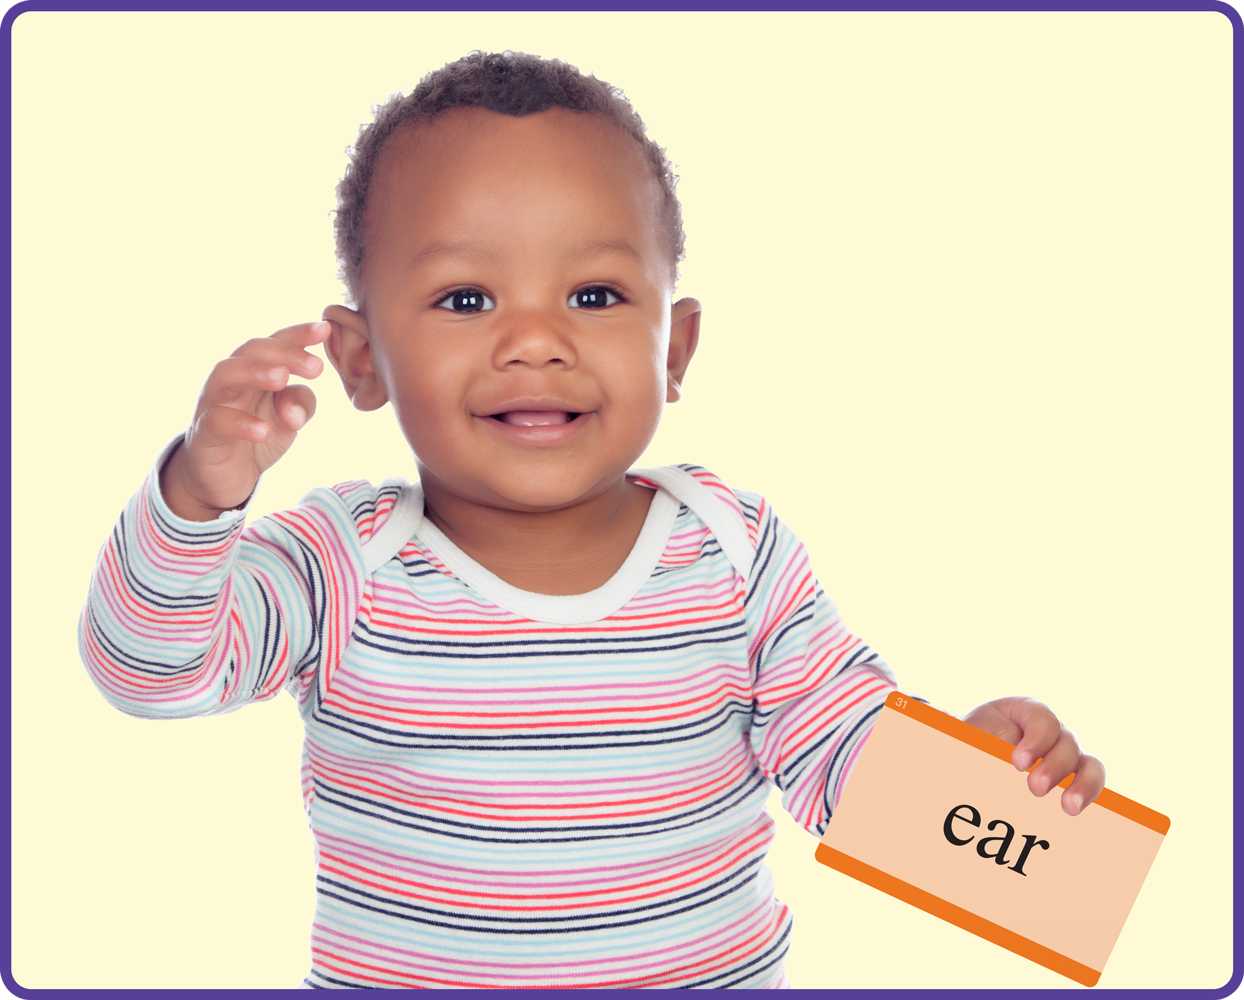 Child holding word card